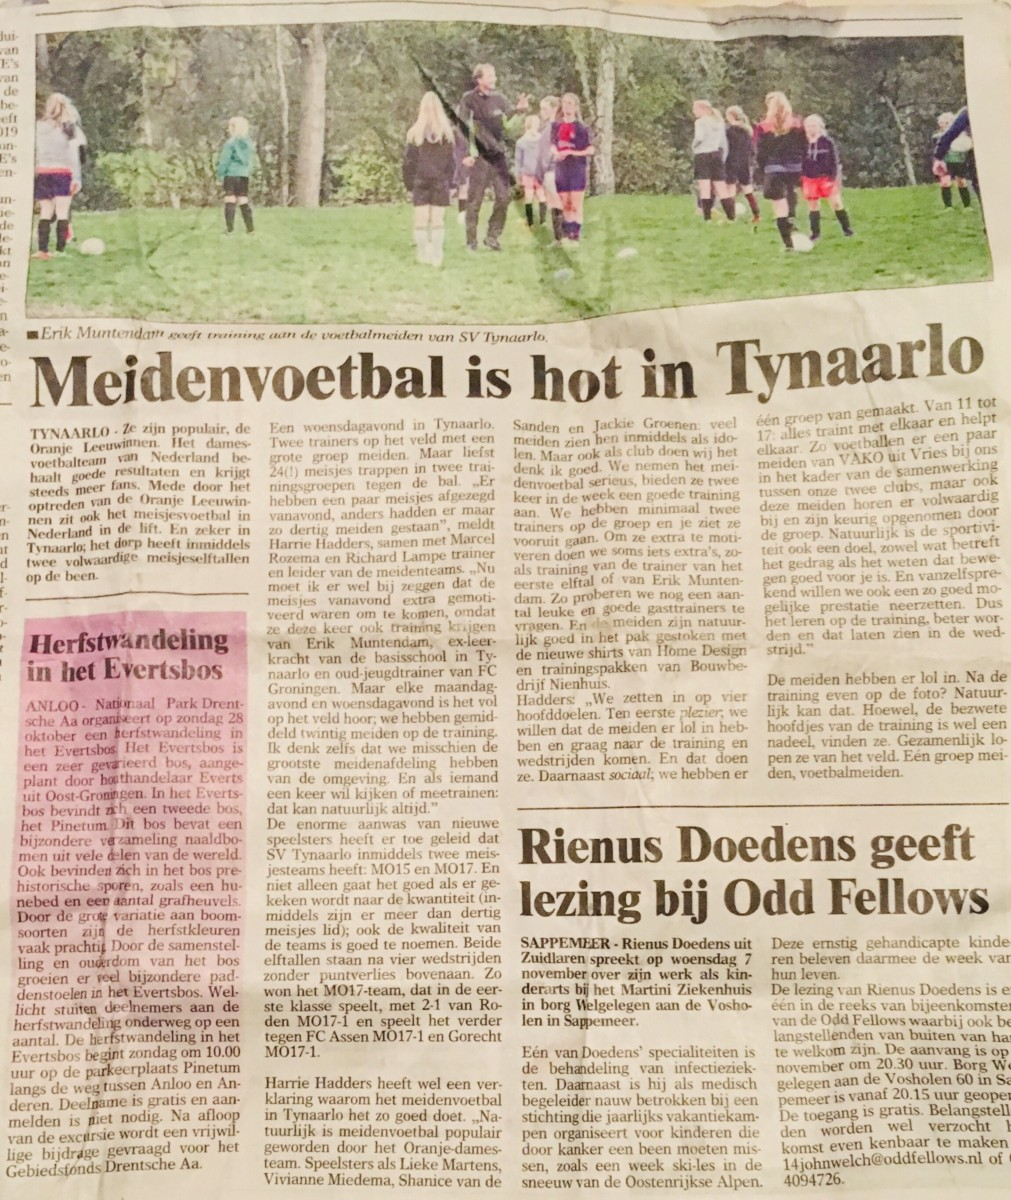 Meidenvoetbal hot in Tynaarlo